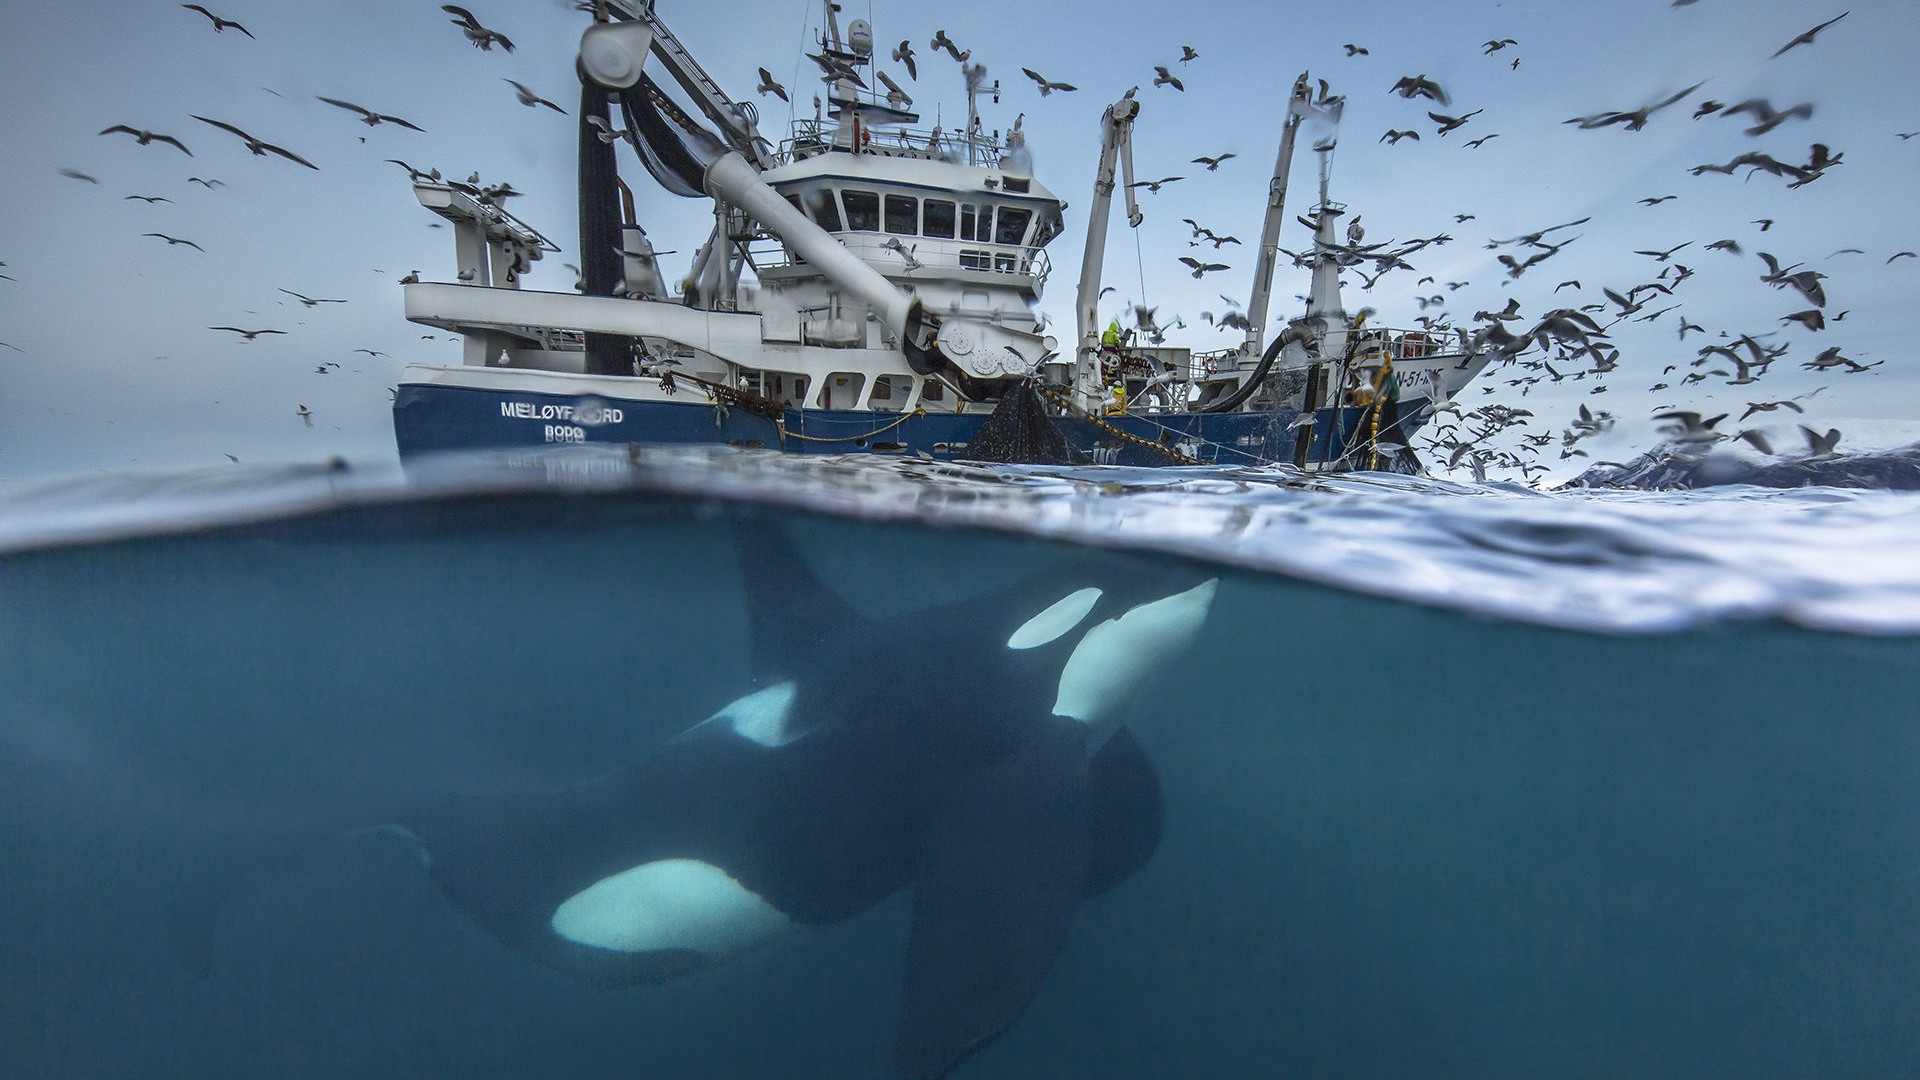 Killer whale chasing fishing boat in arctic Norway